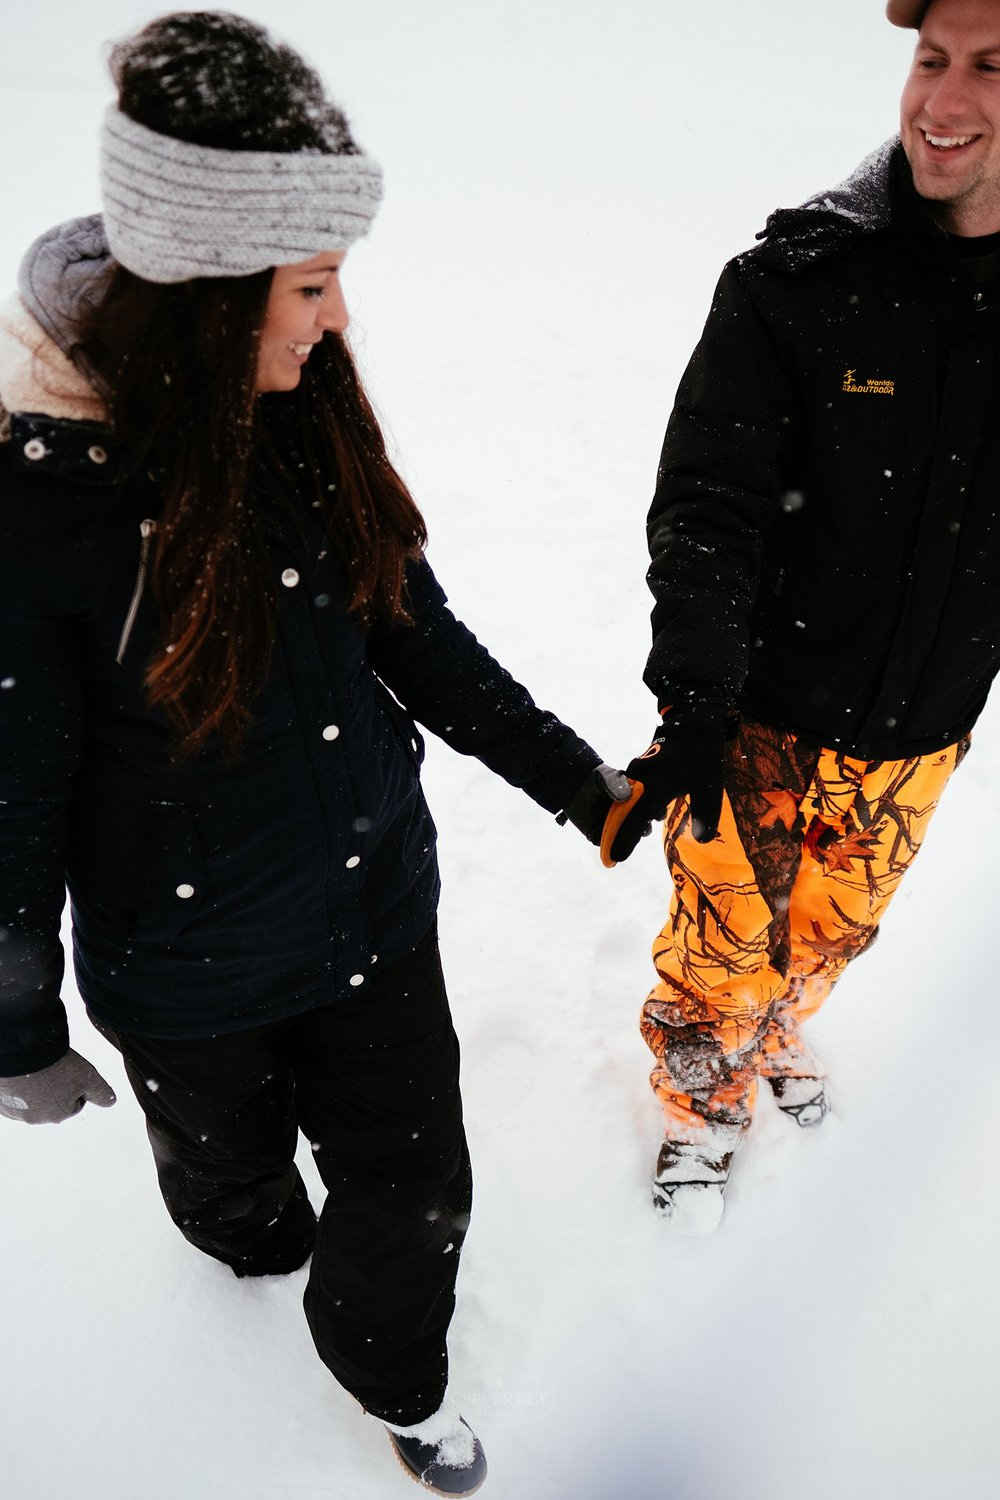 Copper Key Visuals Wisconsin Ice Fishing Engagement Session-17.jpg